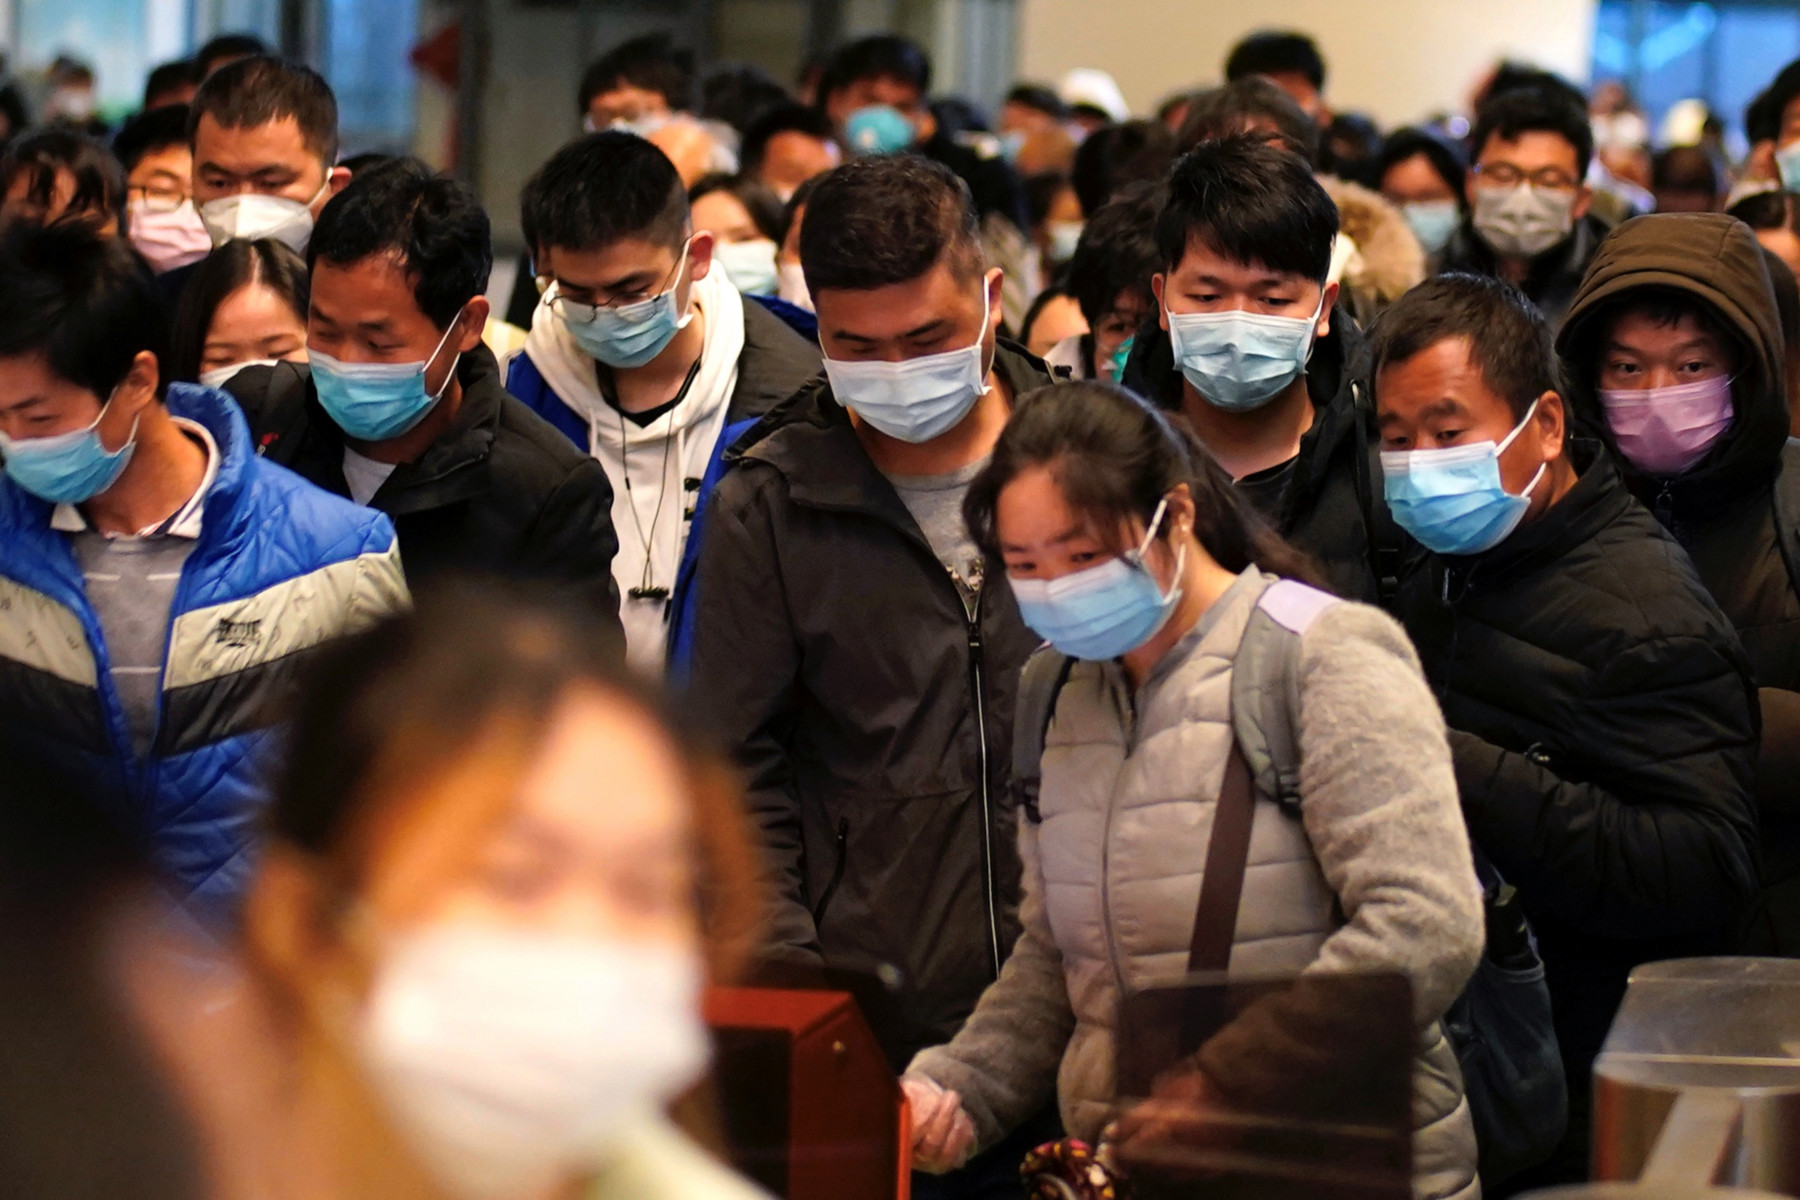 Wuhan has had no new cases of coronavirus in seven days